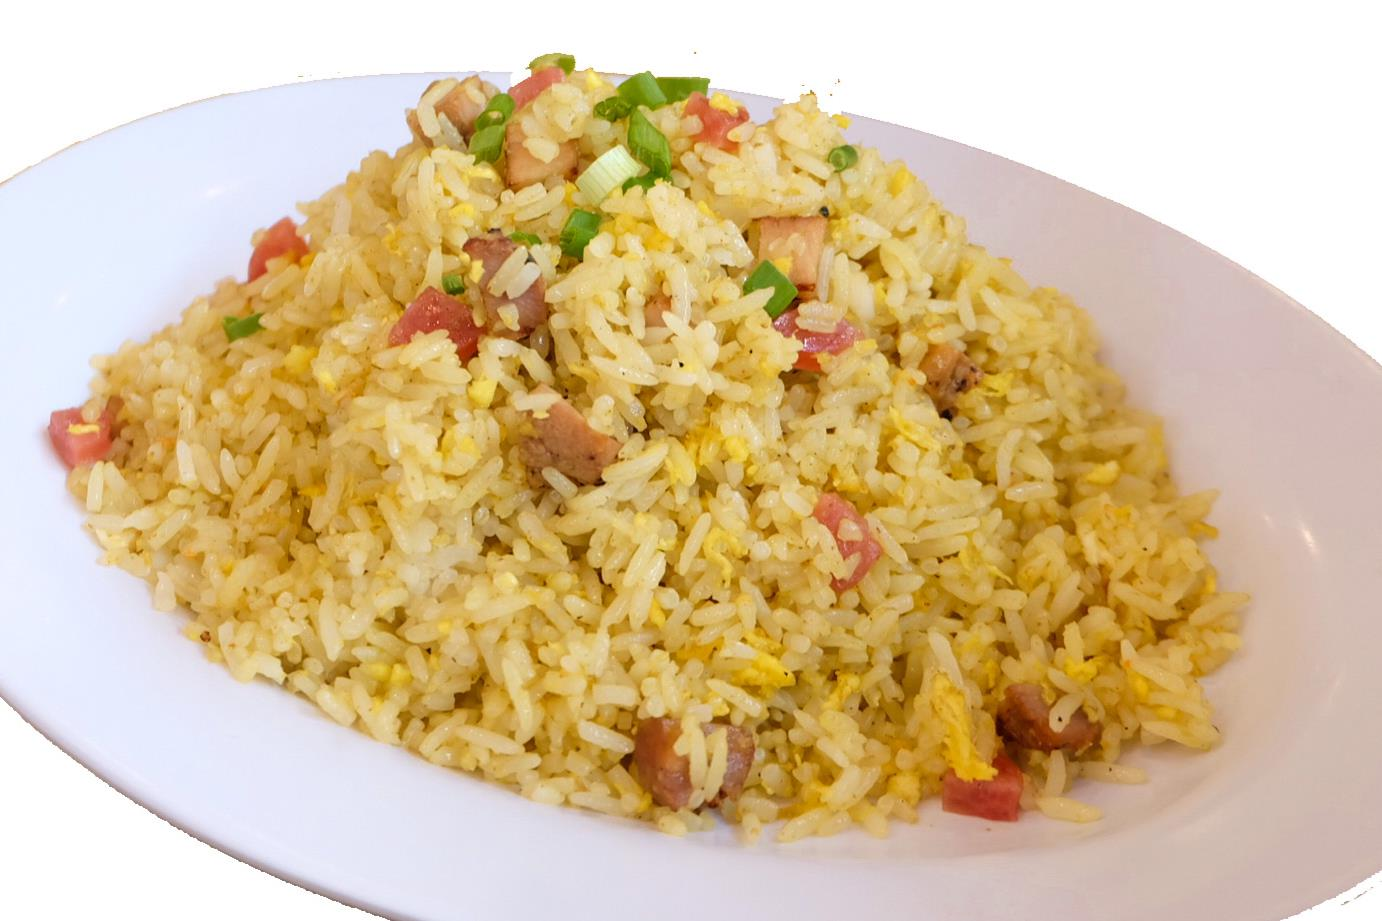 Yang Chow Fried Rice 杨洲炒饭